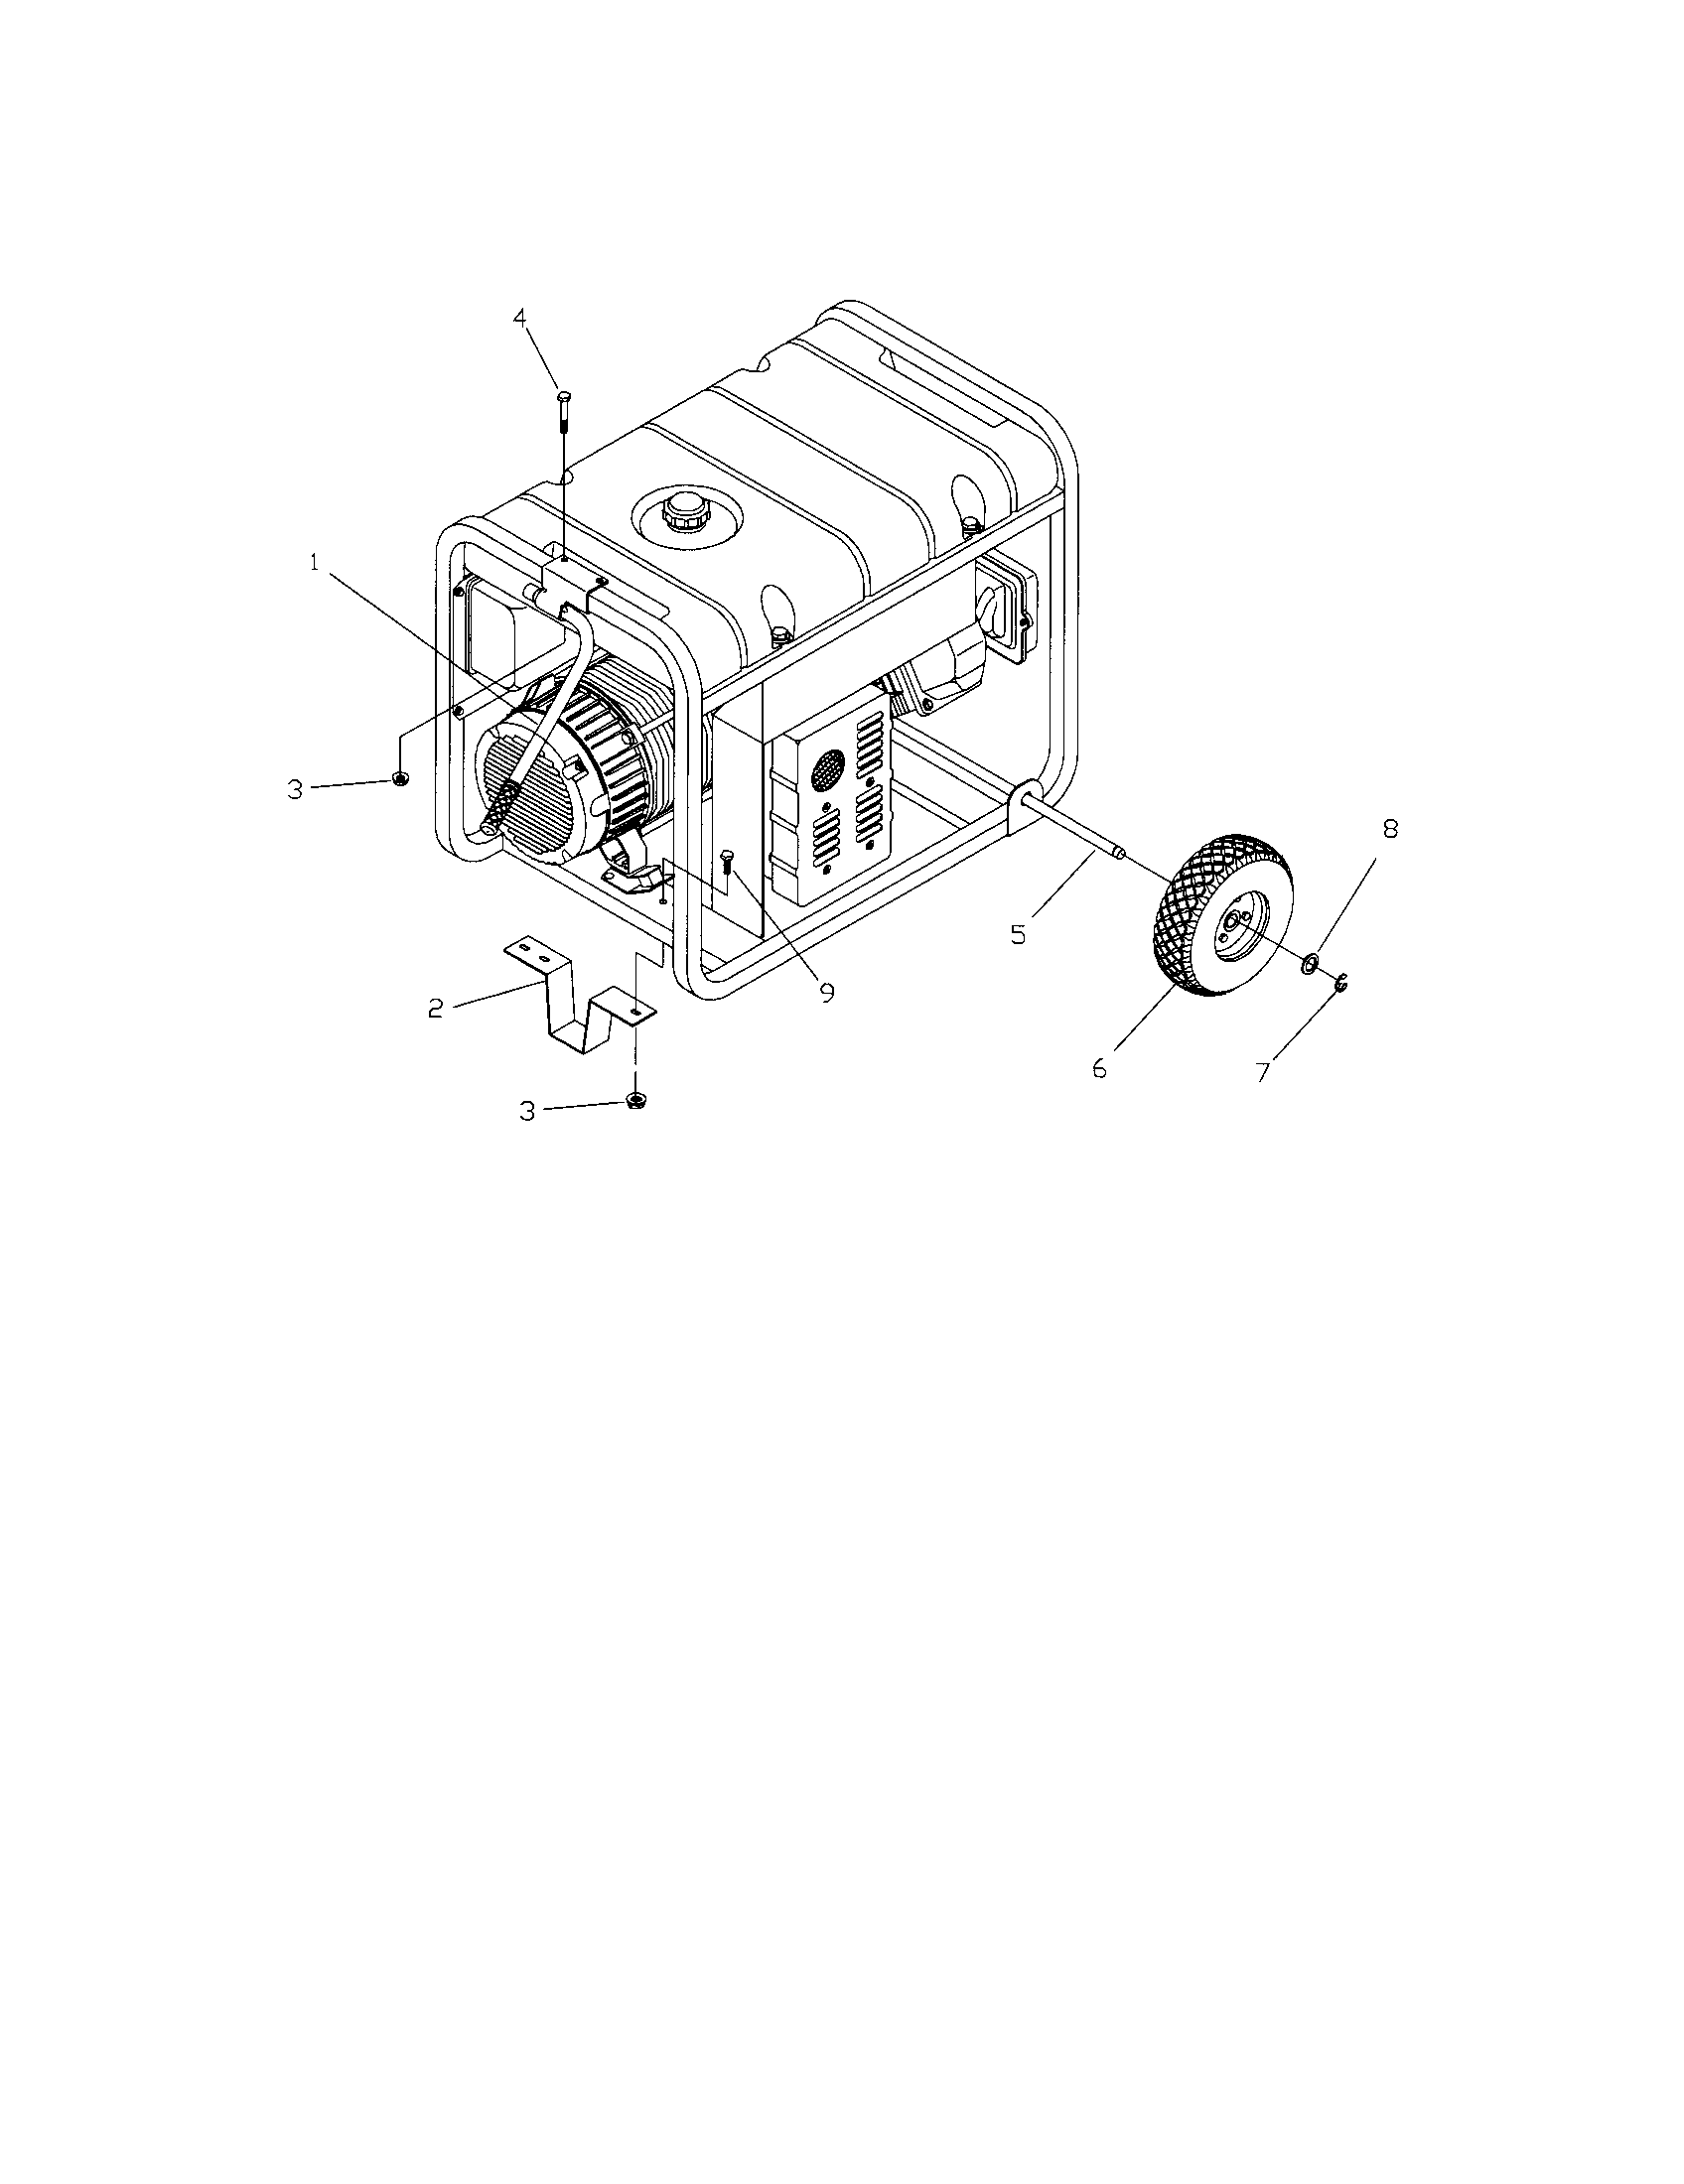 powermate air compressor wiring diagrams